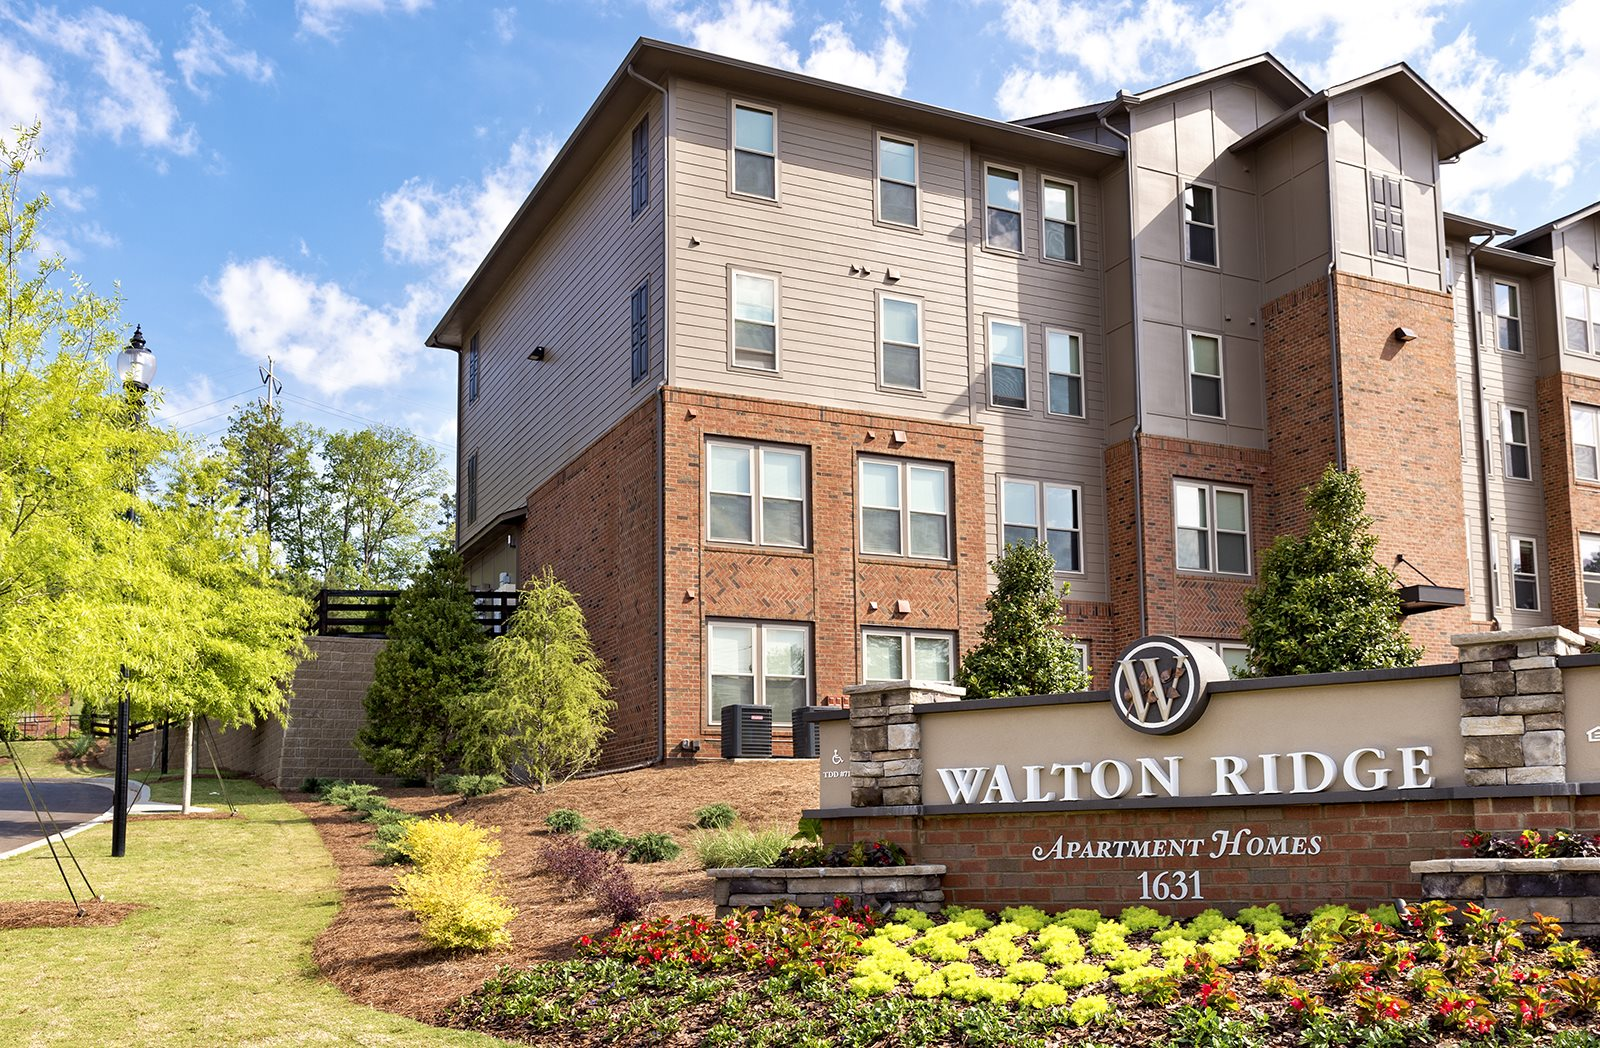 walton ridge luxury apartments marietta ga. Black Bedroom Furniture Sets. Home Design Ideas